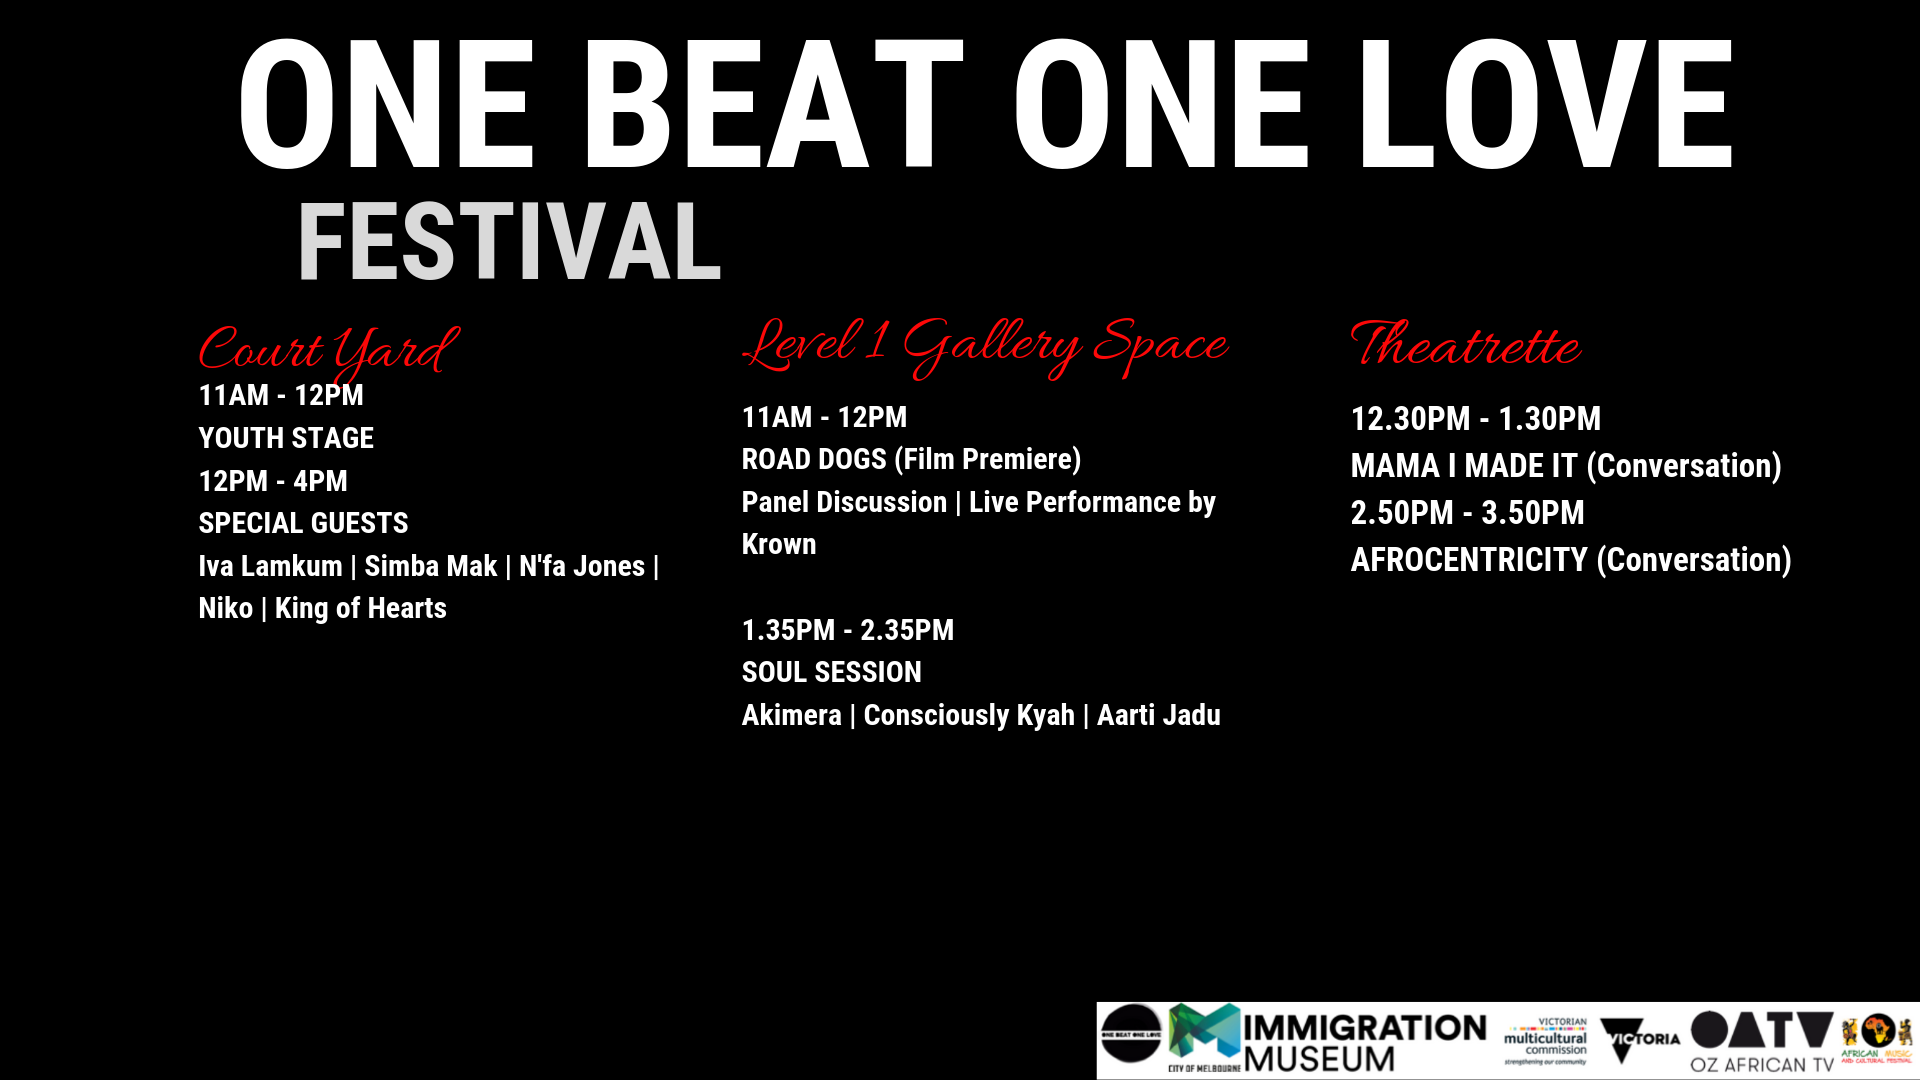 One Beat One Love Program